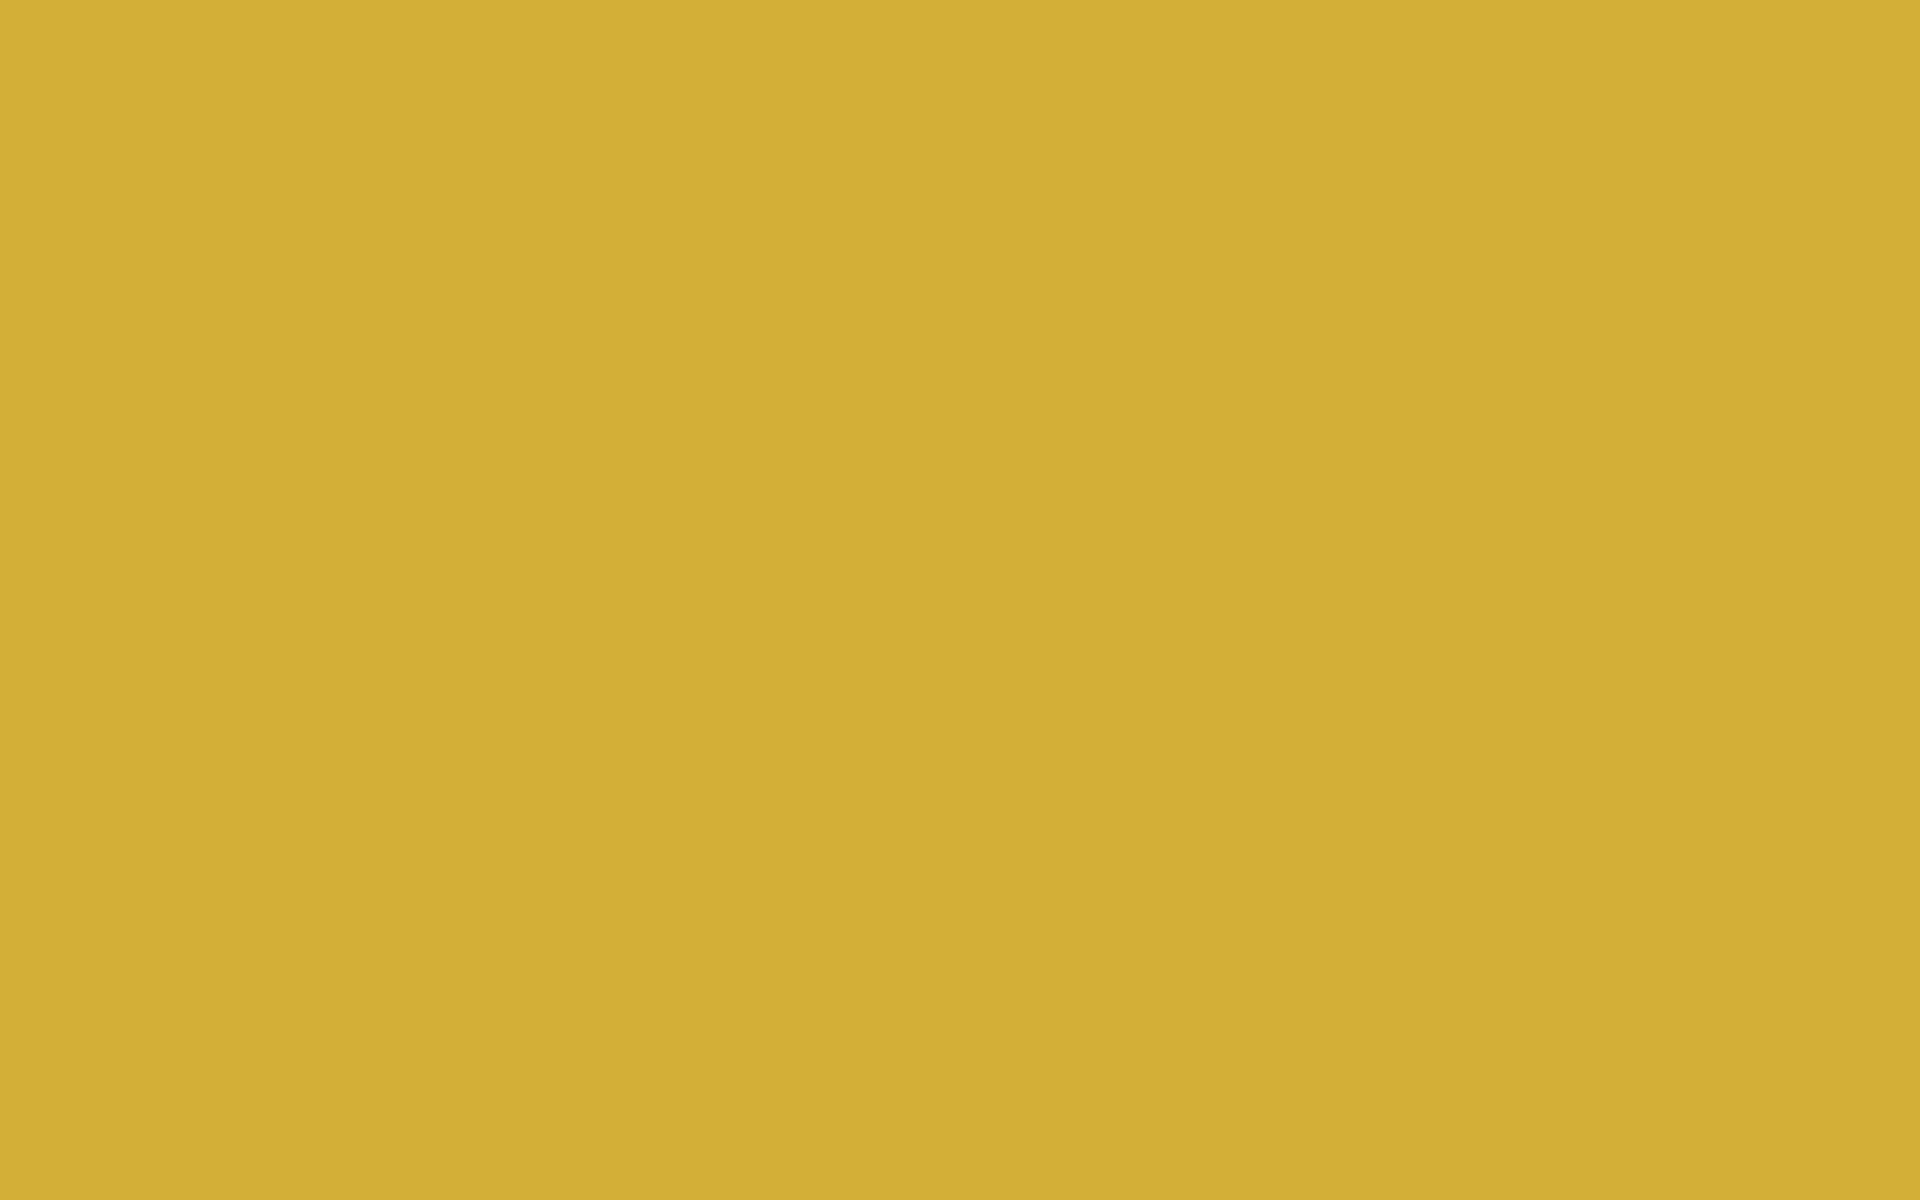 1920x1200 Gold Metallic Solid Color Background